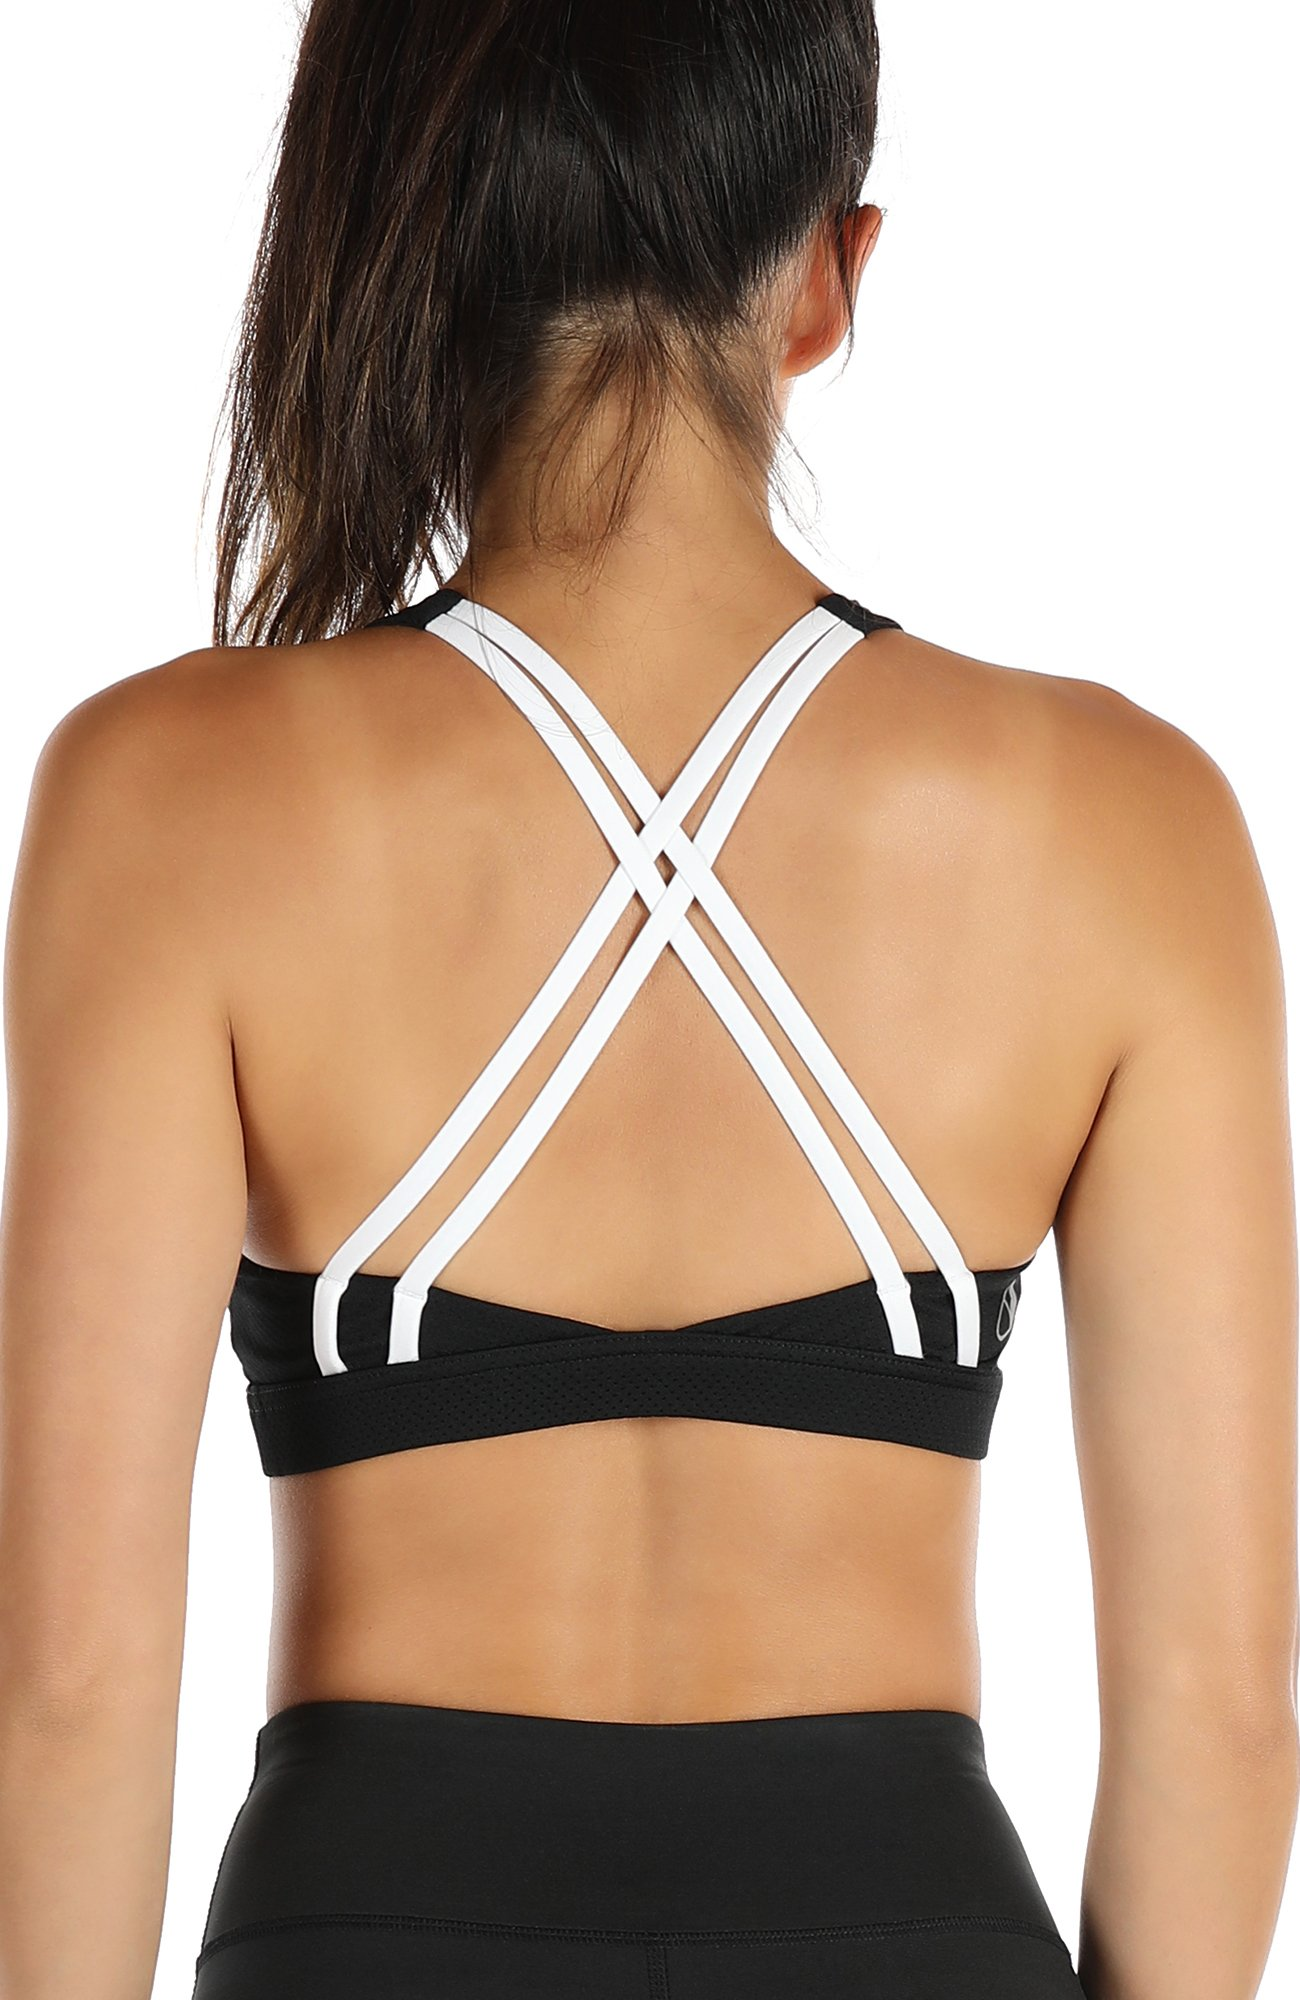 icyZone Sports Bra for Women Workout Yoga Tops Athletic Strappy Padded Bralette (L, Black)